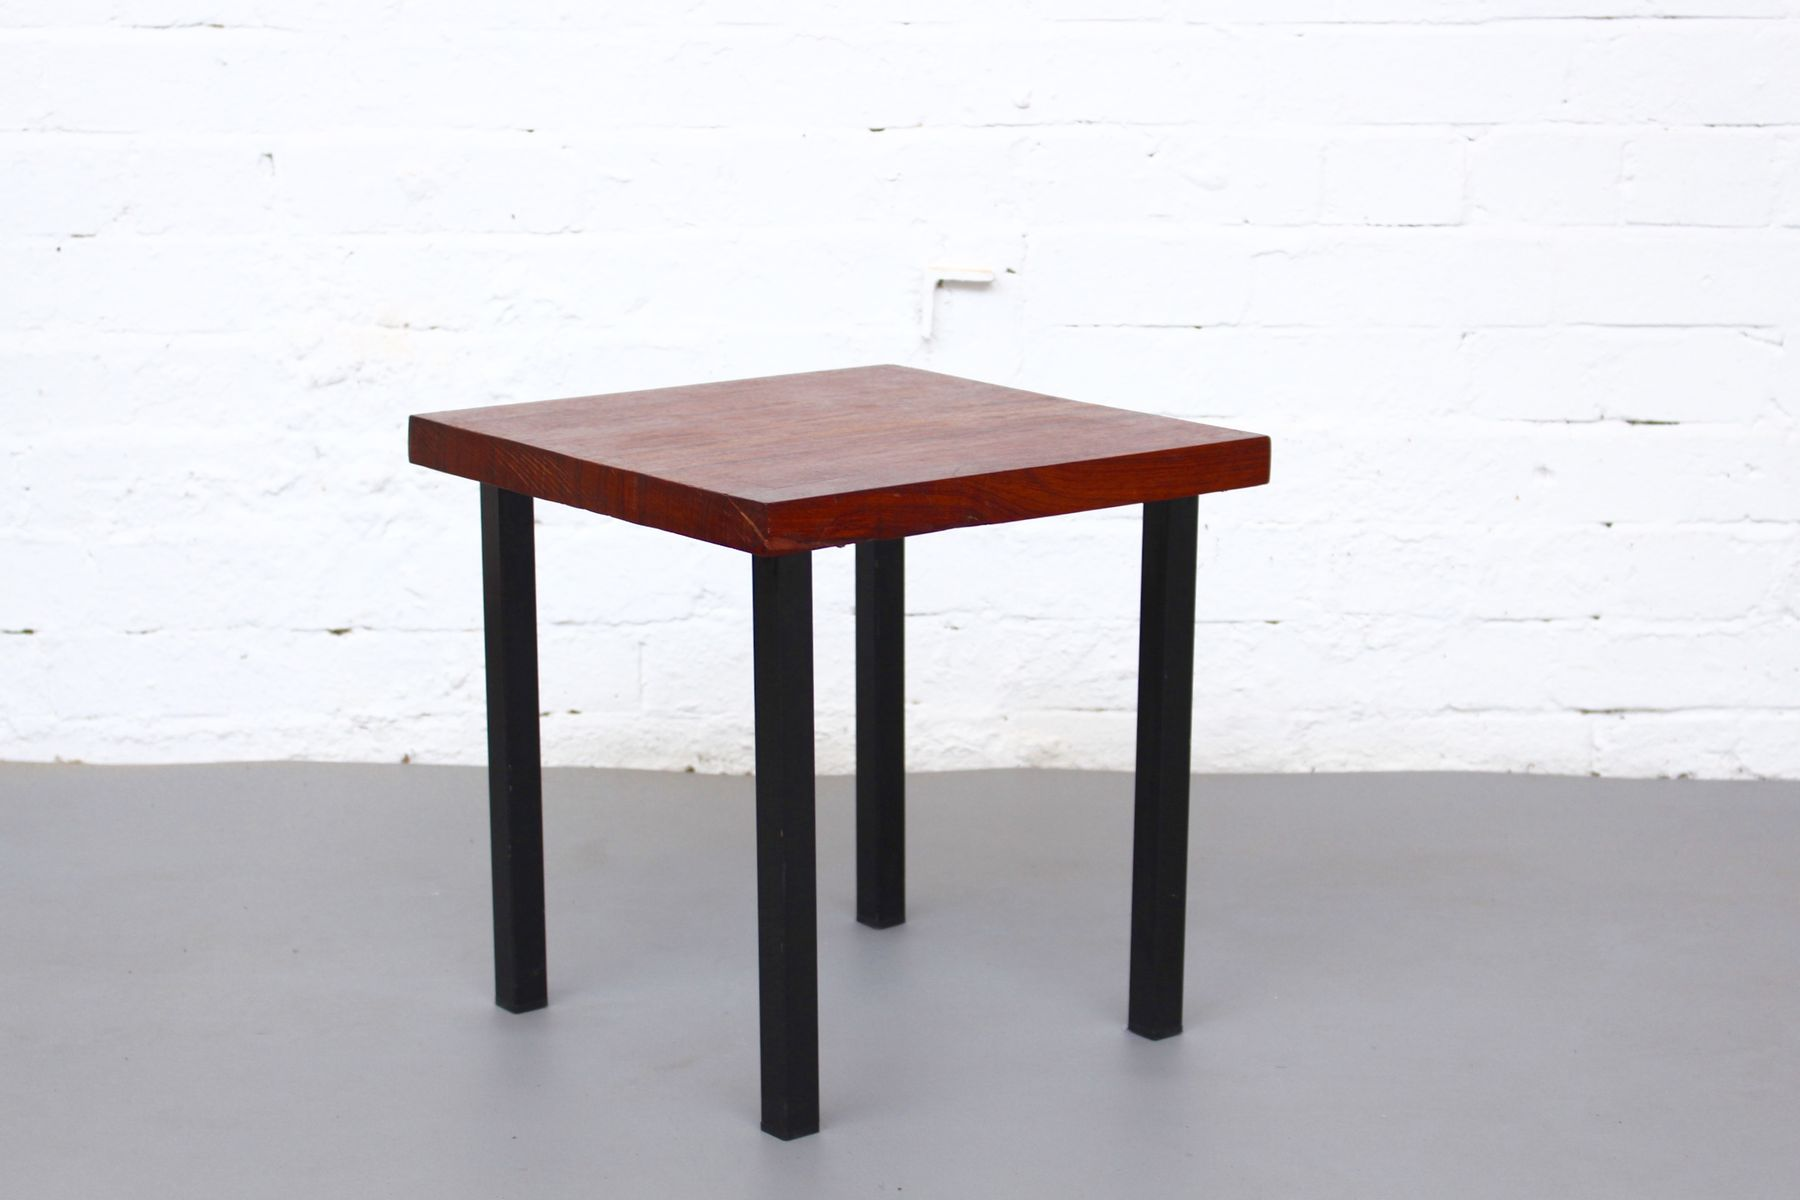 Petite Table Appoint Petite Table D 39appoint Mid Century En Teck Massif 1960s